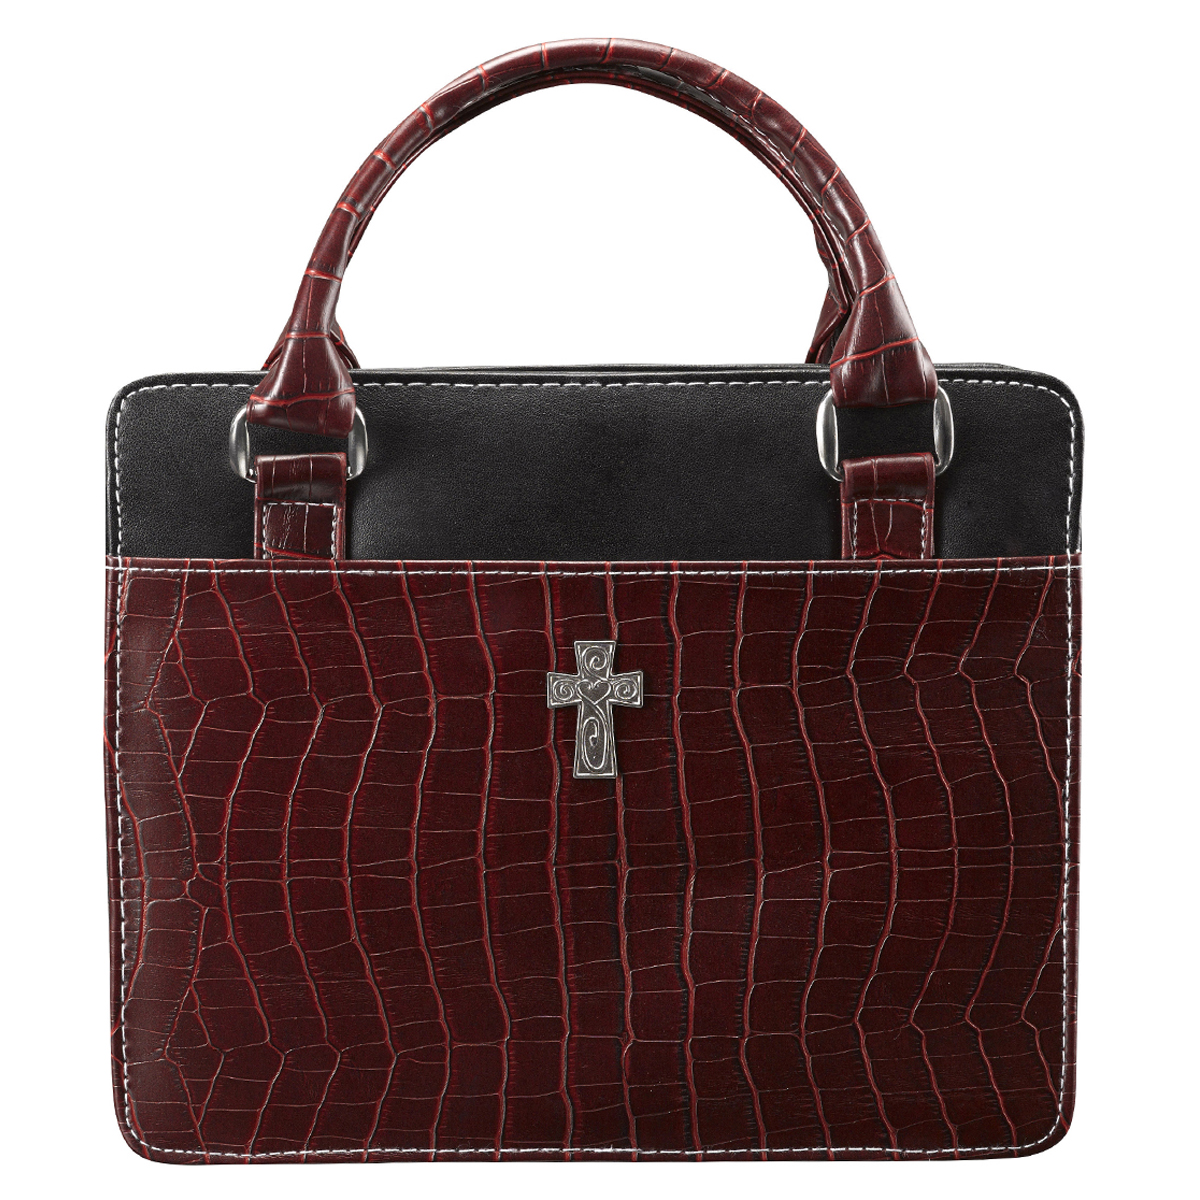 Purse-Style-with-Crocodile-Embossing-in-Burgundy-Bible-Cover-Size-Medium